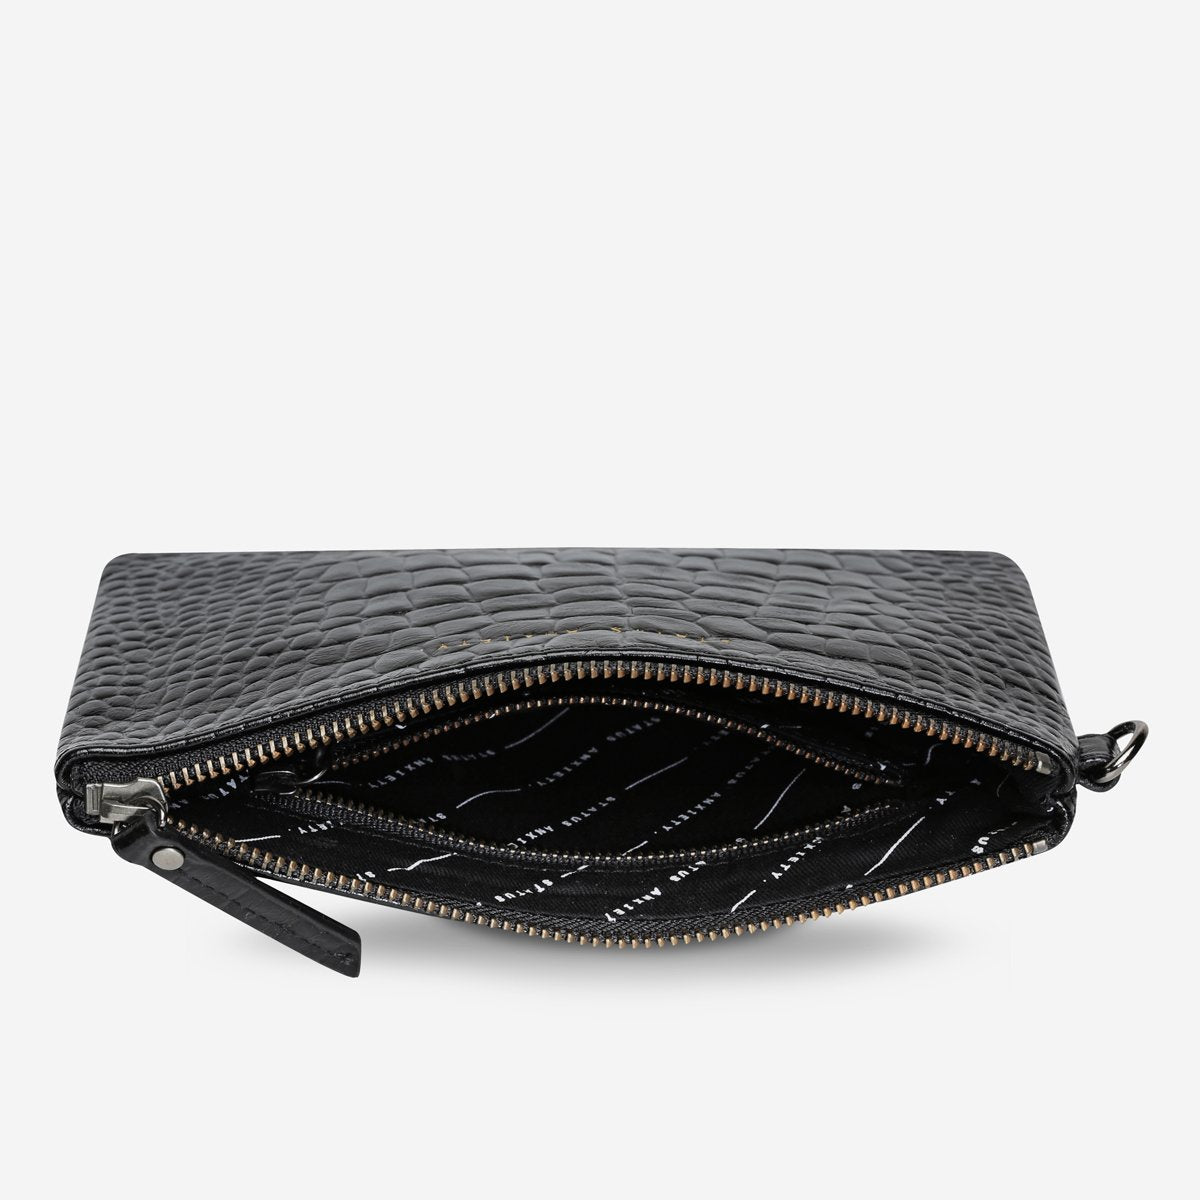 Status Anxiety Fixation Pouch in Black Croc Emboss